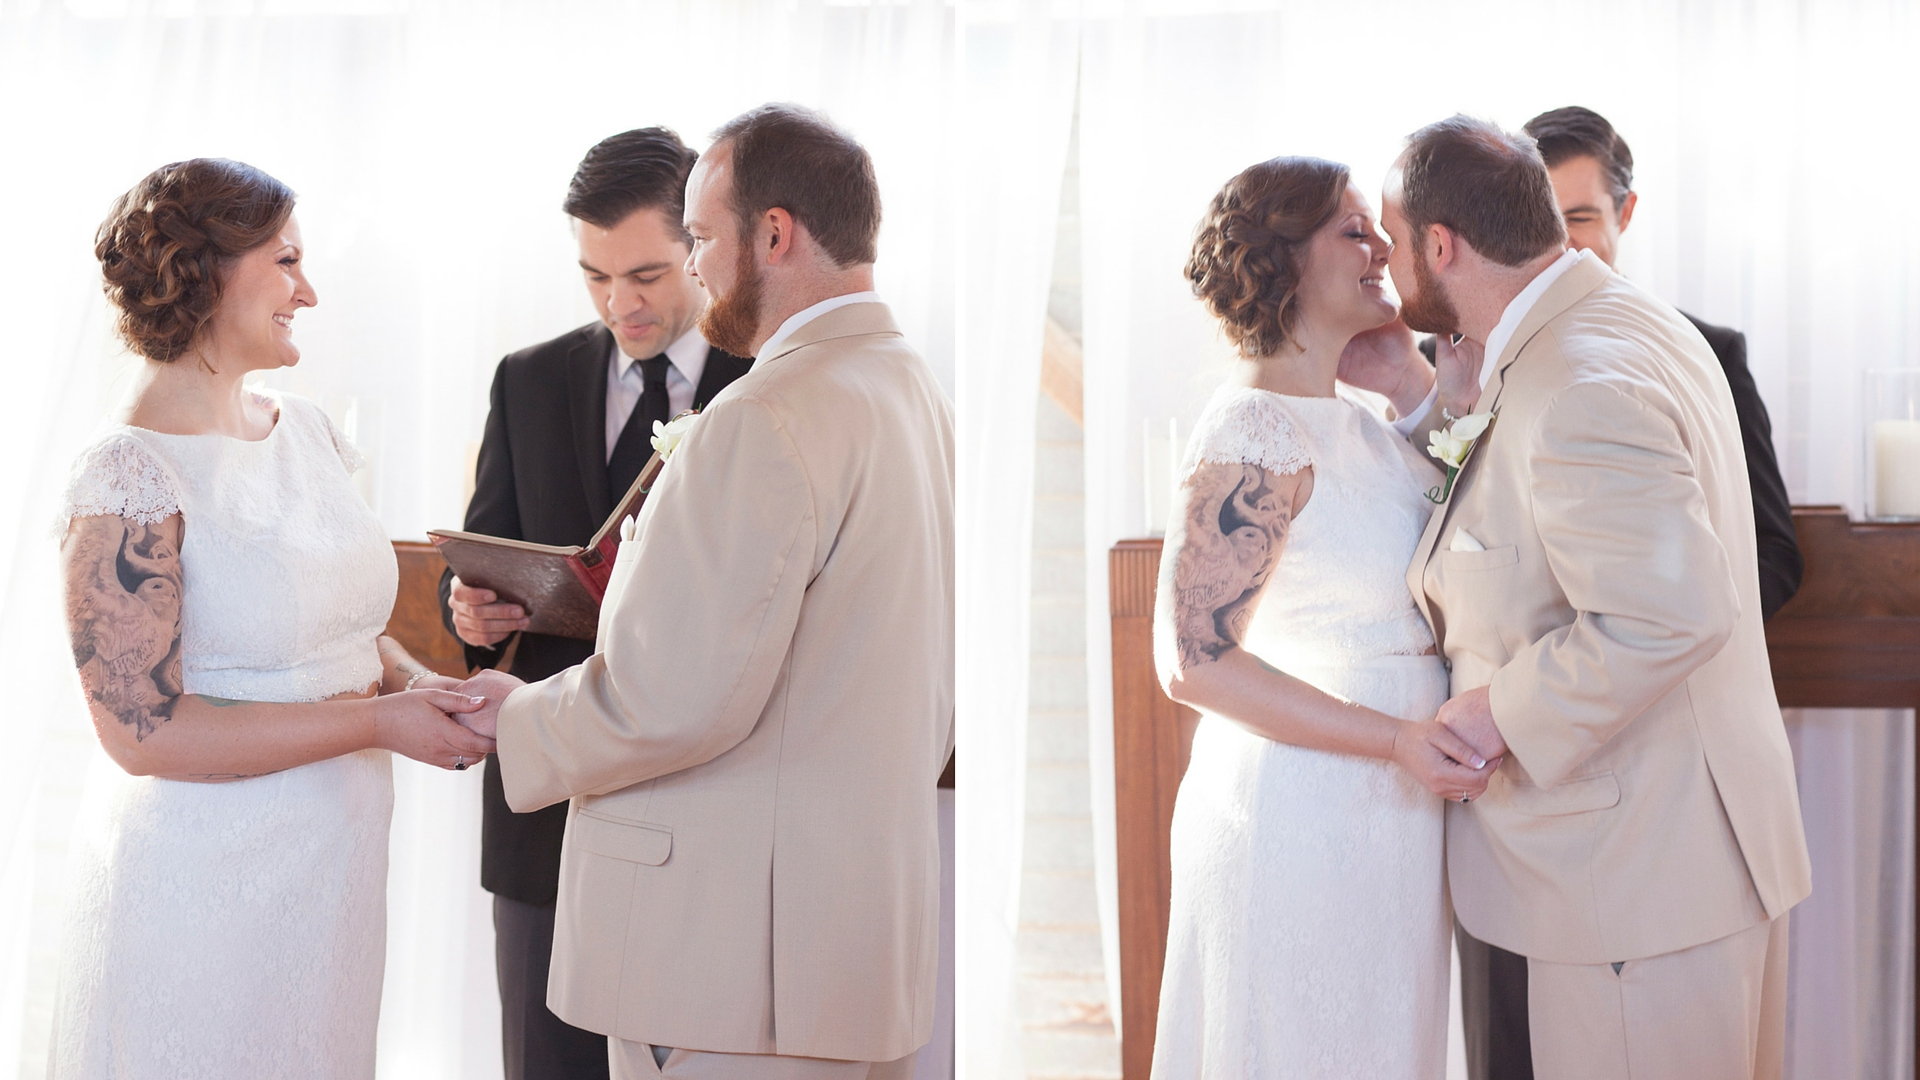 Something New For I Do, Wedding Photography Tips, Must-Have Wedding Photos, Carrie Reagan Photography